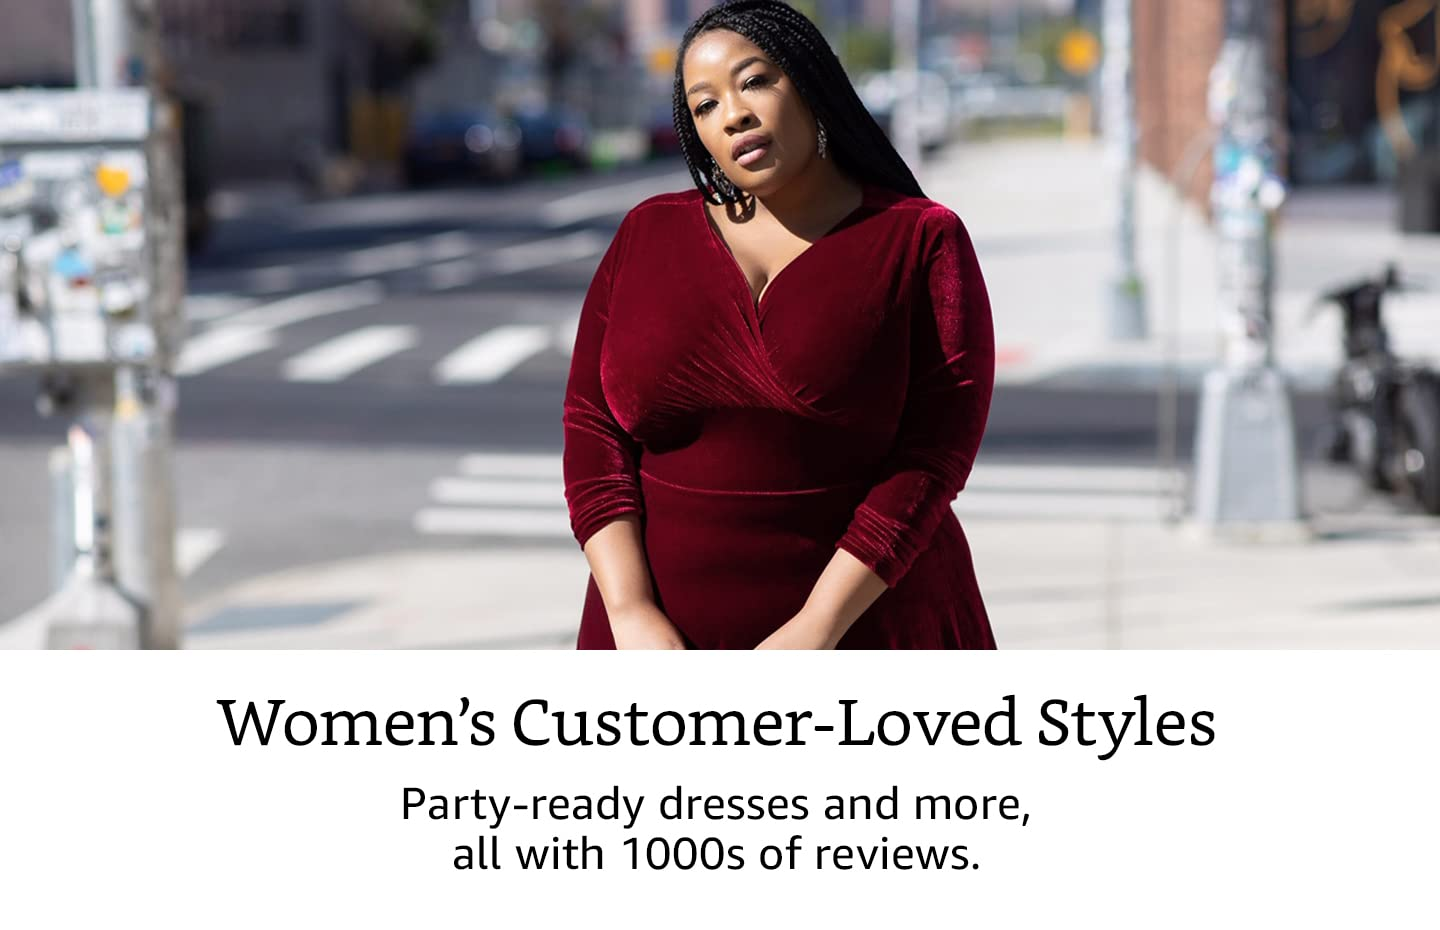 Women's Customer-Loved Styles